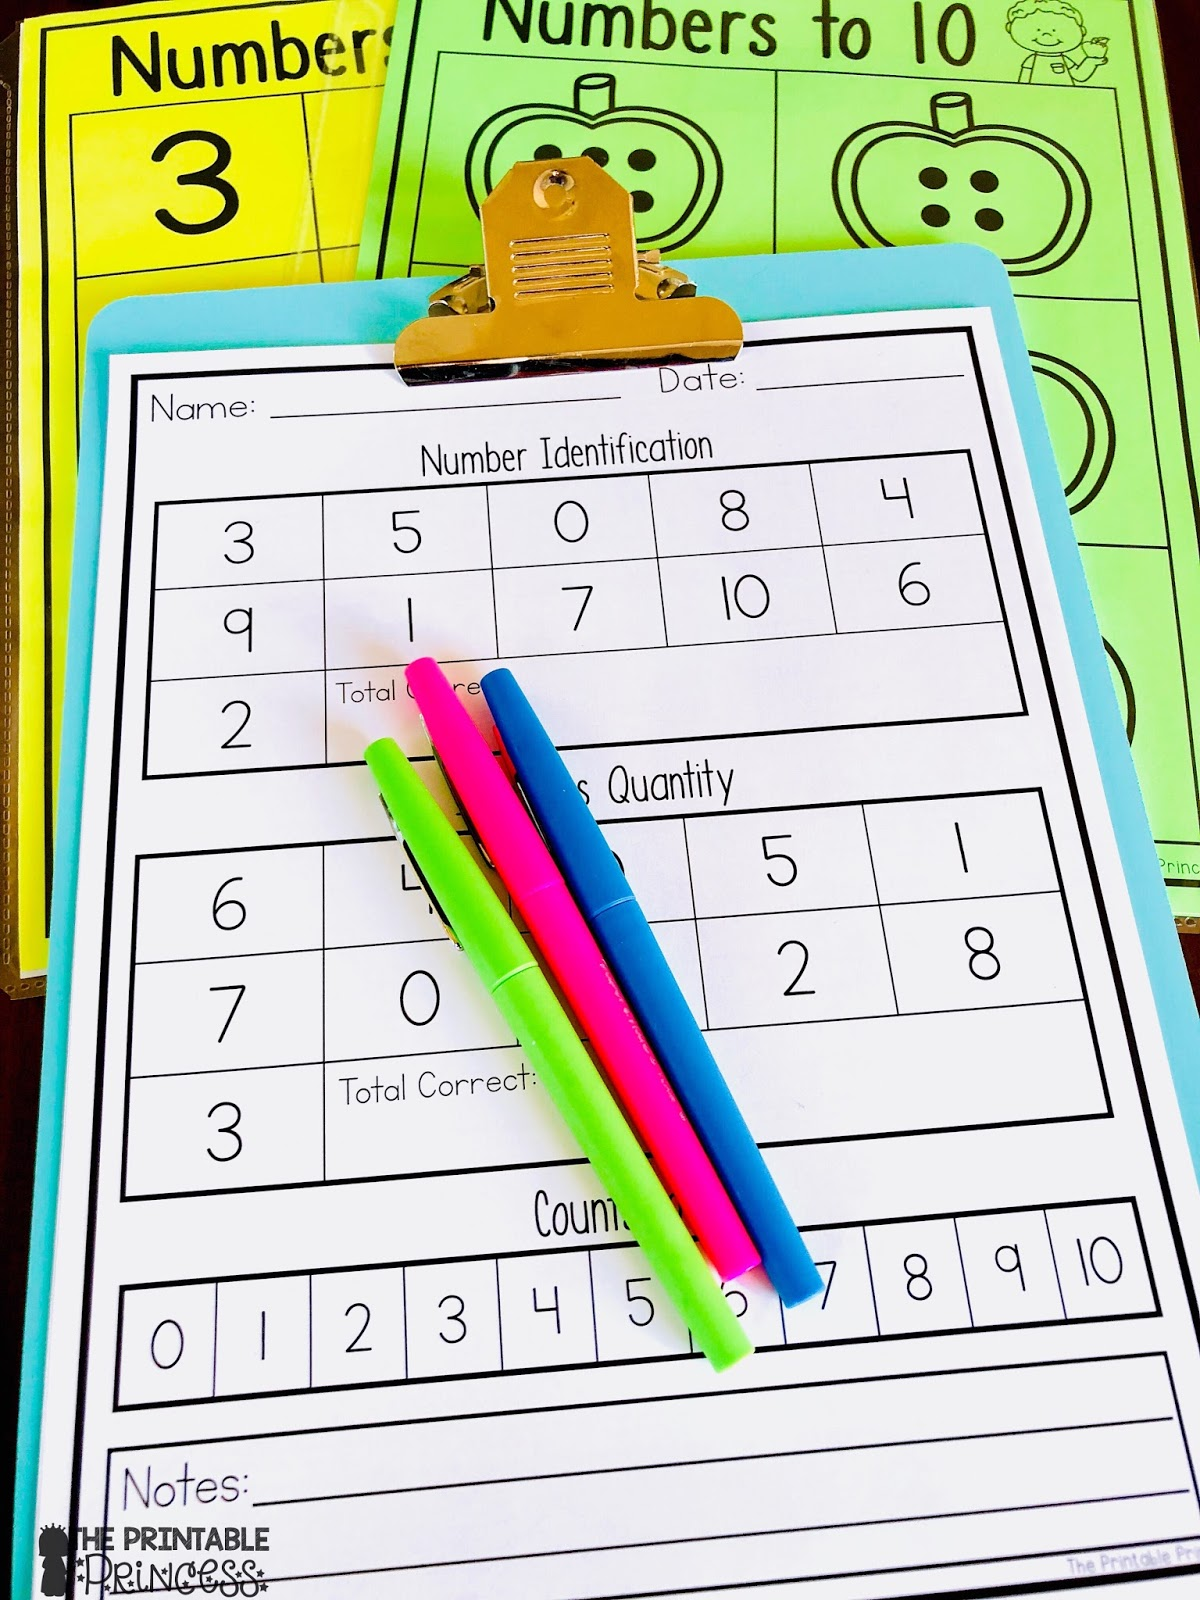 The Printable Princess: Numbers to 10 Activities for Little Learners